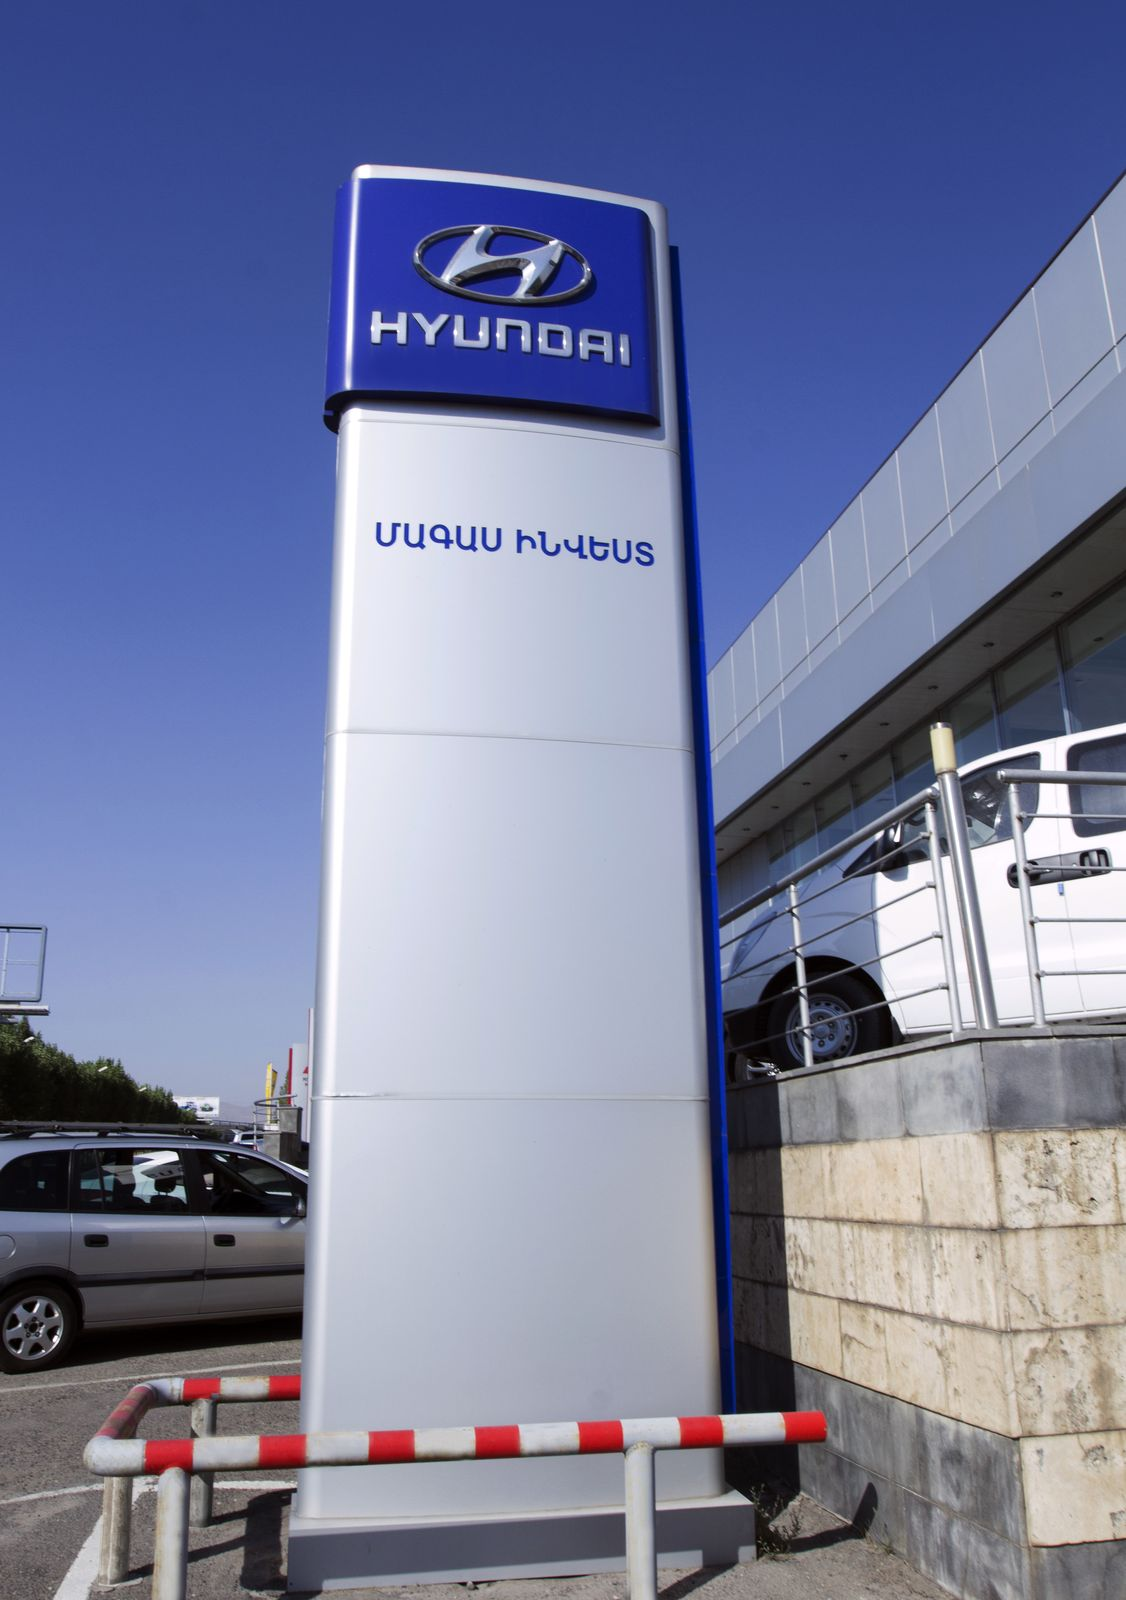 Hyundai Pylon Sign